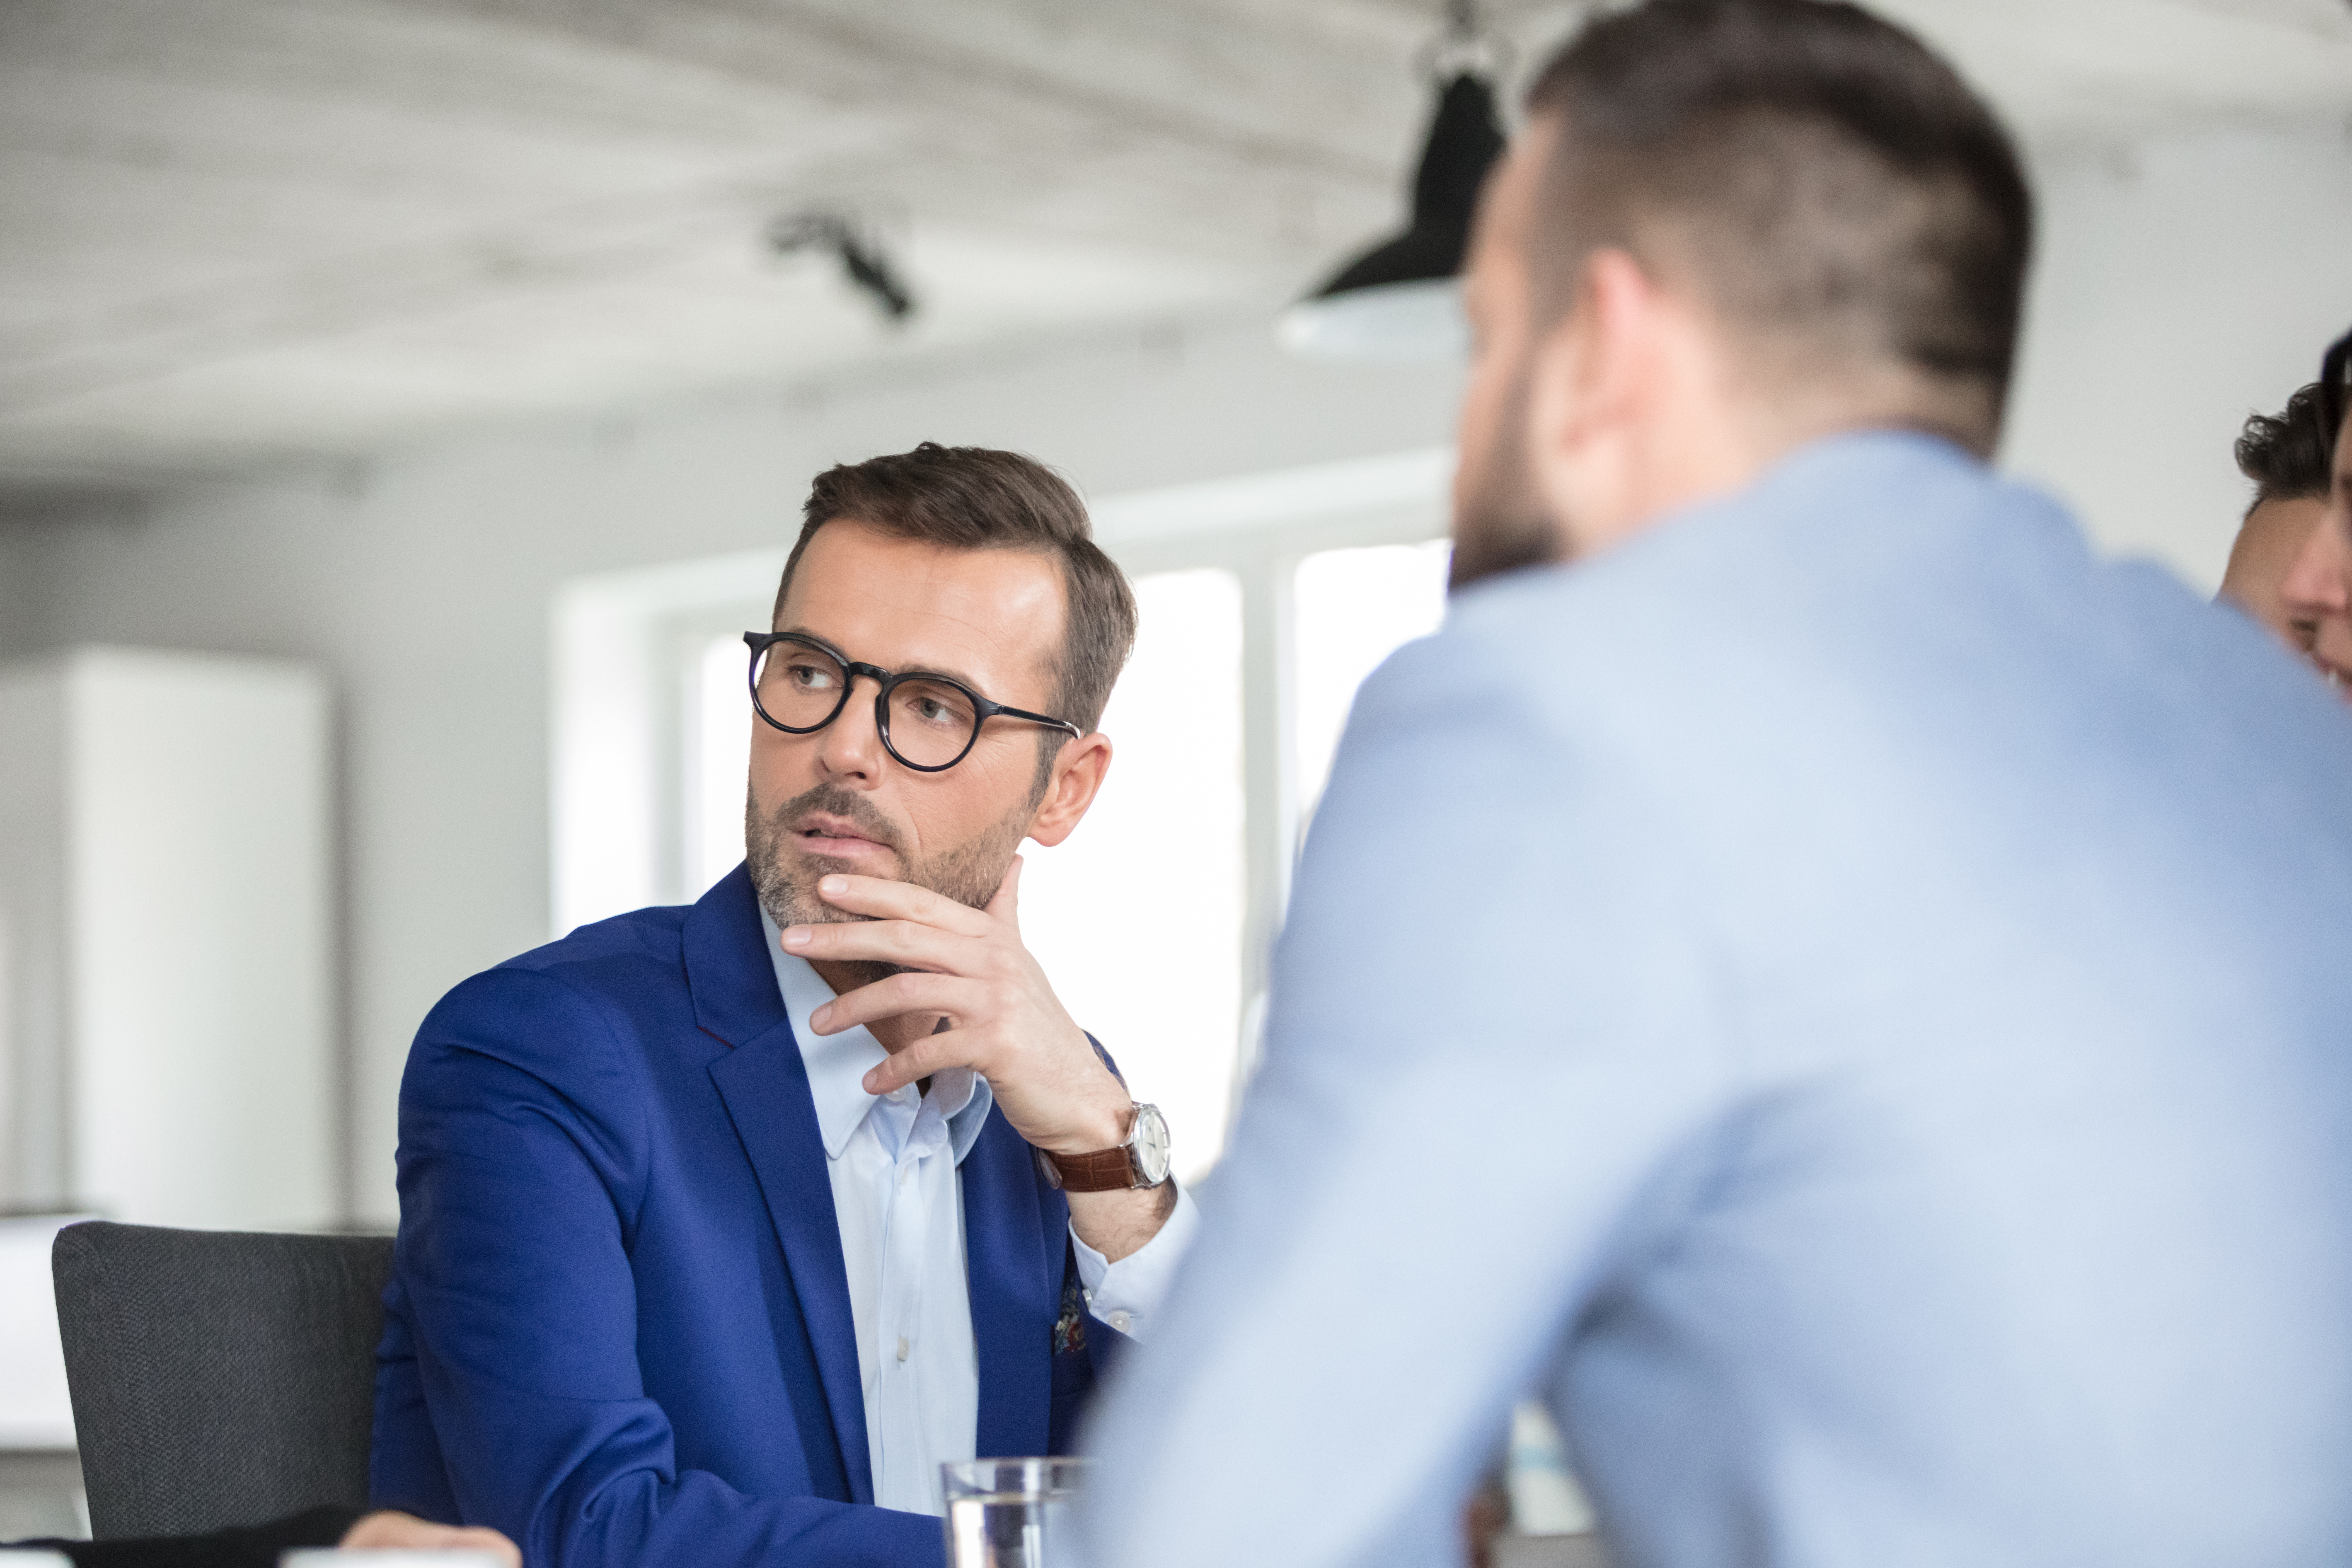 Requesting Meeting To Review Your >> How To Request A Meeting With The Boss Chron Com